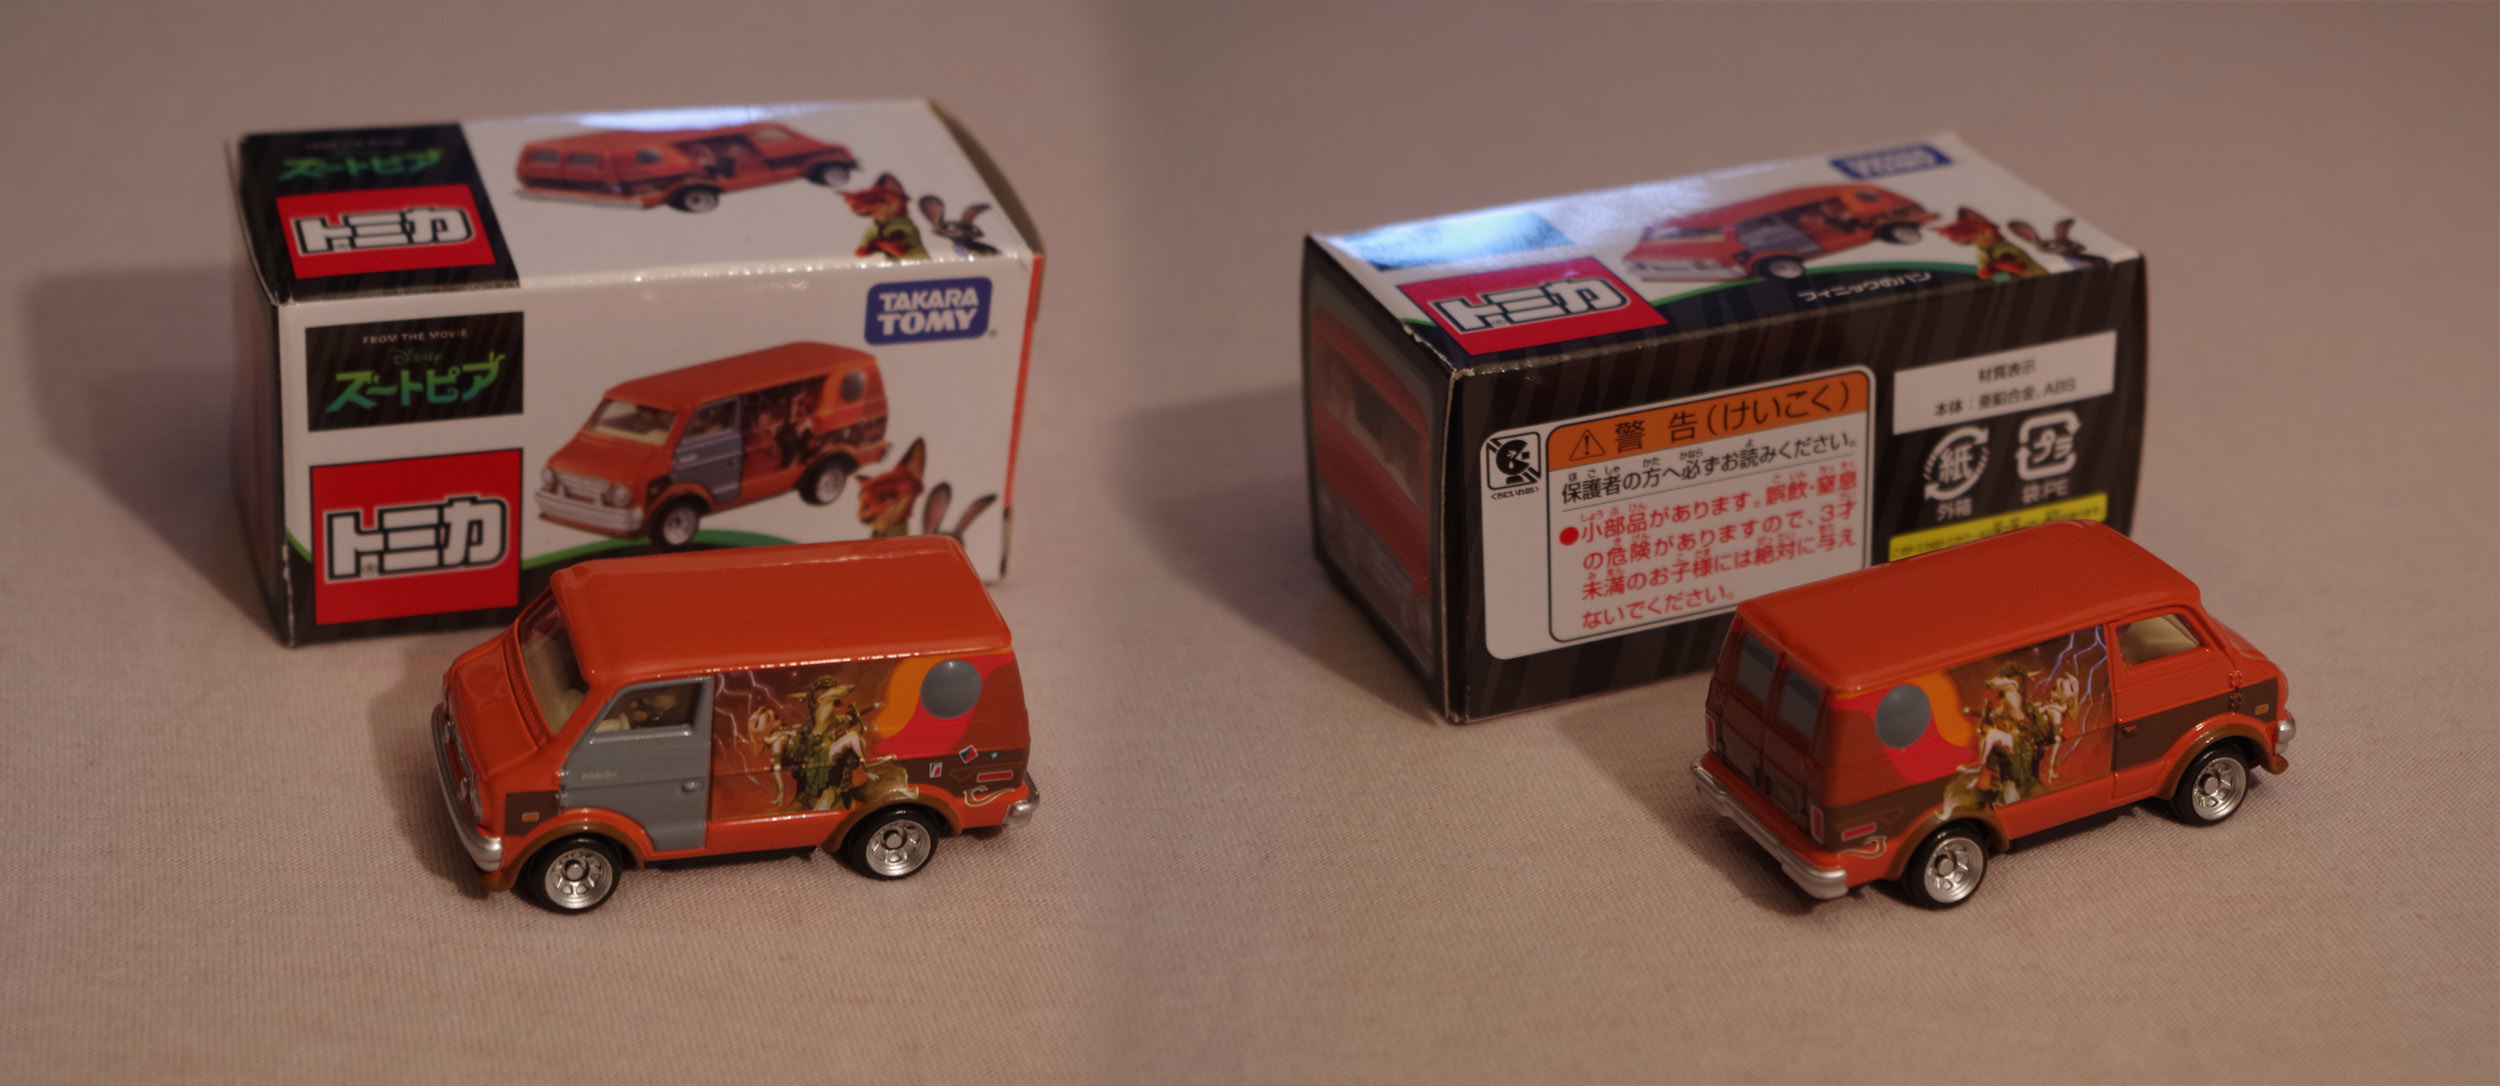 zootopia_item__tomica_finnick_van_by_hyenatig-dbftf19 Cool Review About Zootopia Cars with Inspiring Images Cars Review